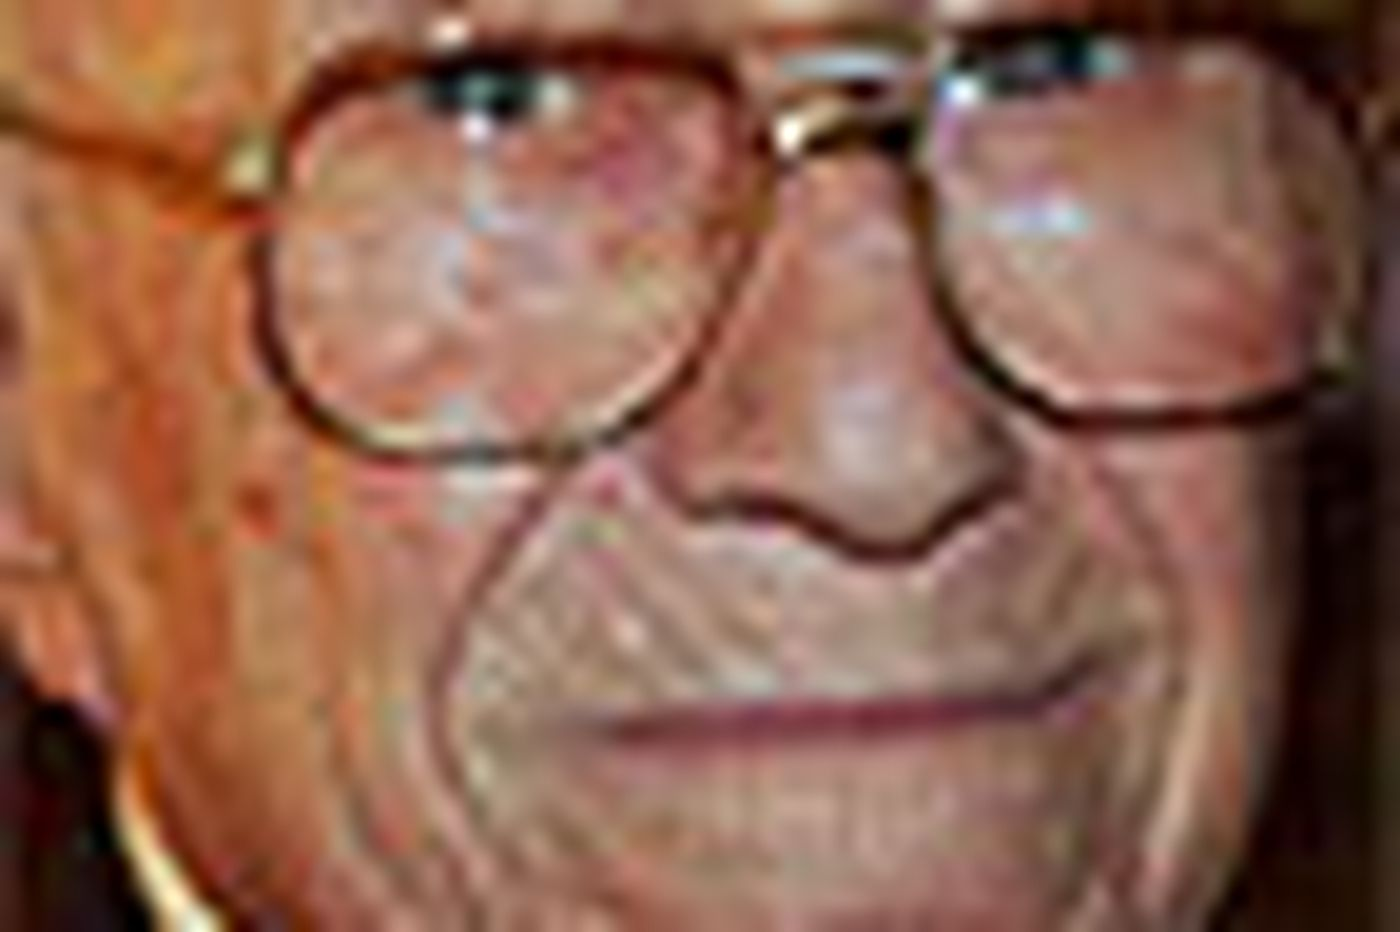 Joseph R. Liss, 95; owned bakery company